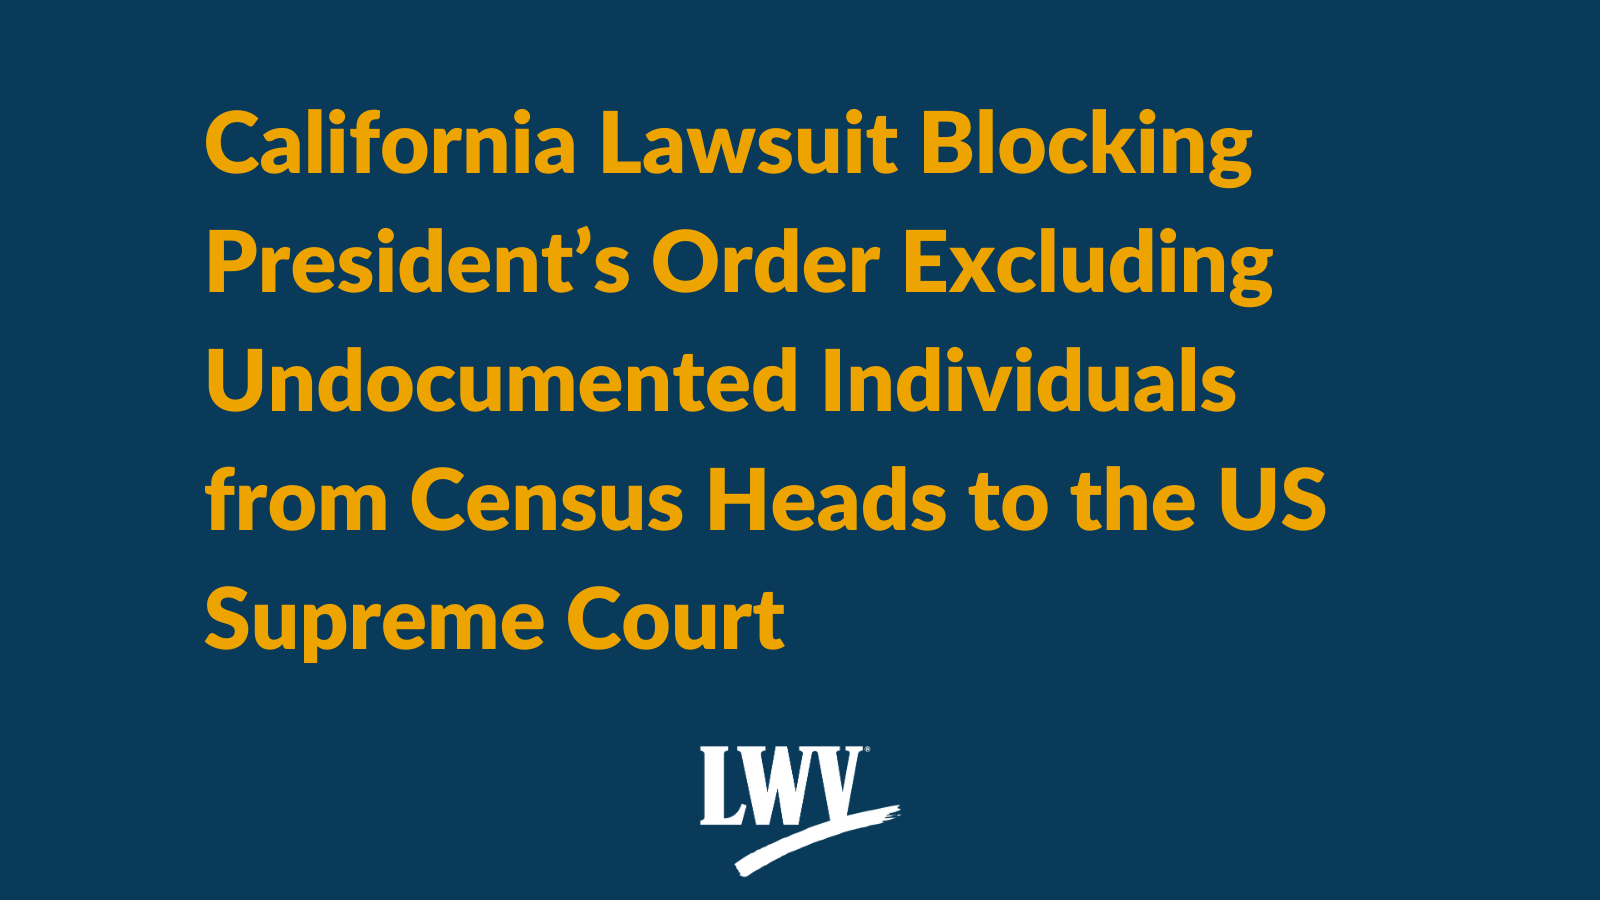 California Lawsuit Blocking President's Order Excluding Undocumented Individuals from Census Heads to the US Supreme Court